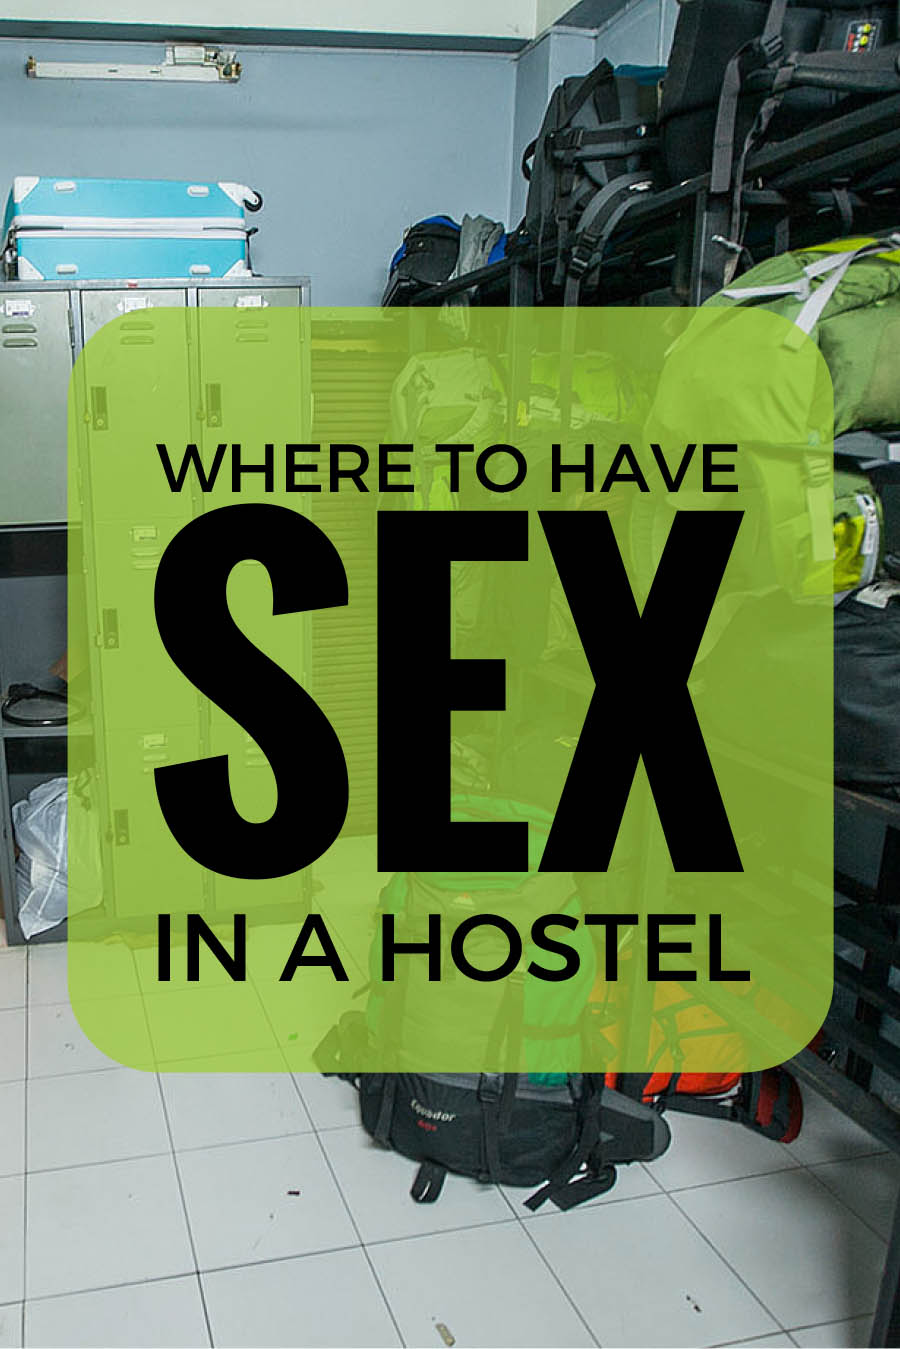 Where and how to have sex in a hostel - the best places for backpacker hookups when staying in a hostel.